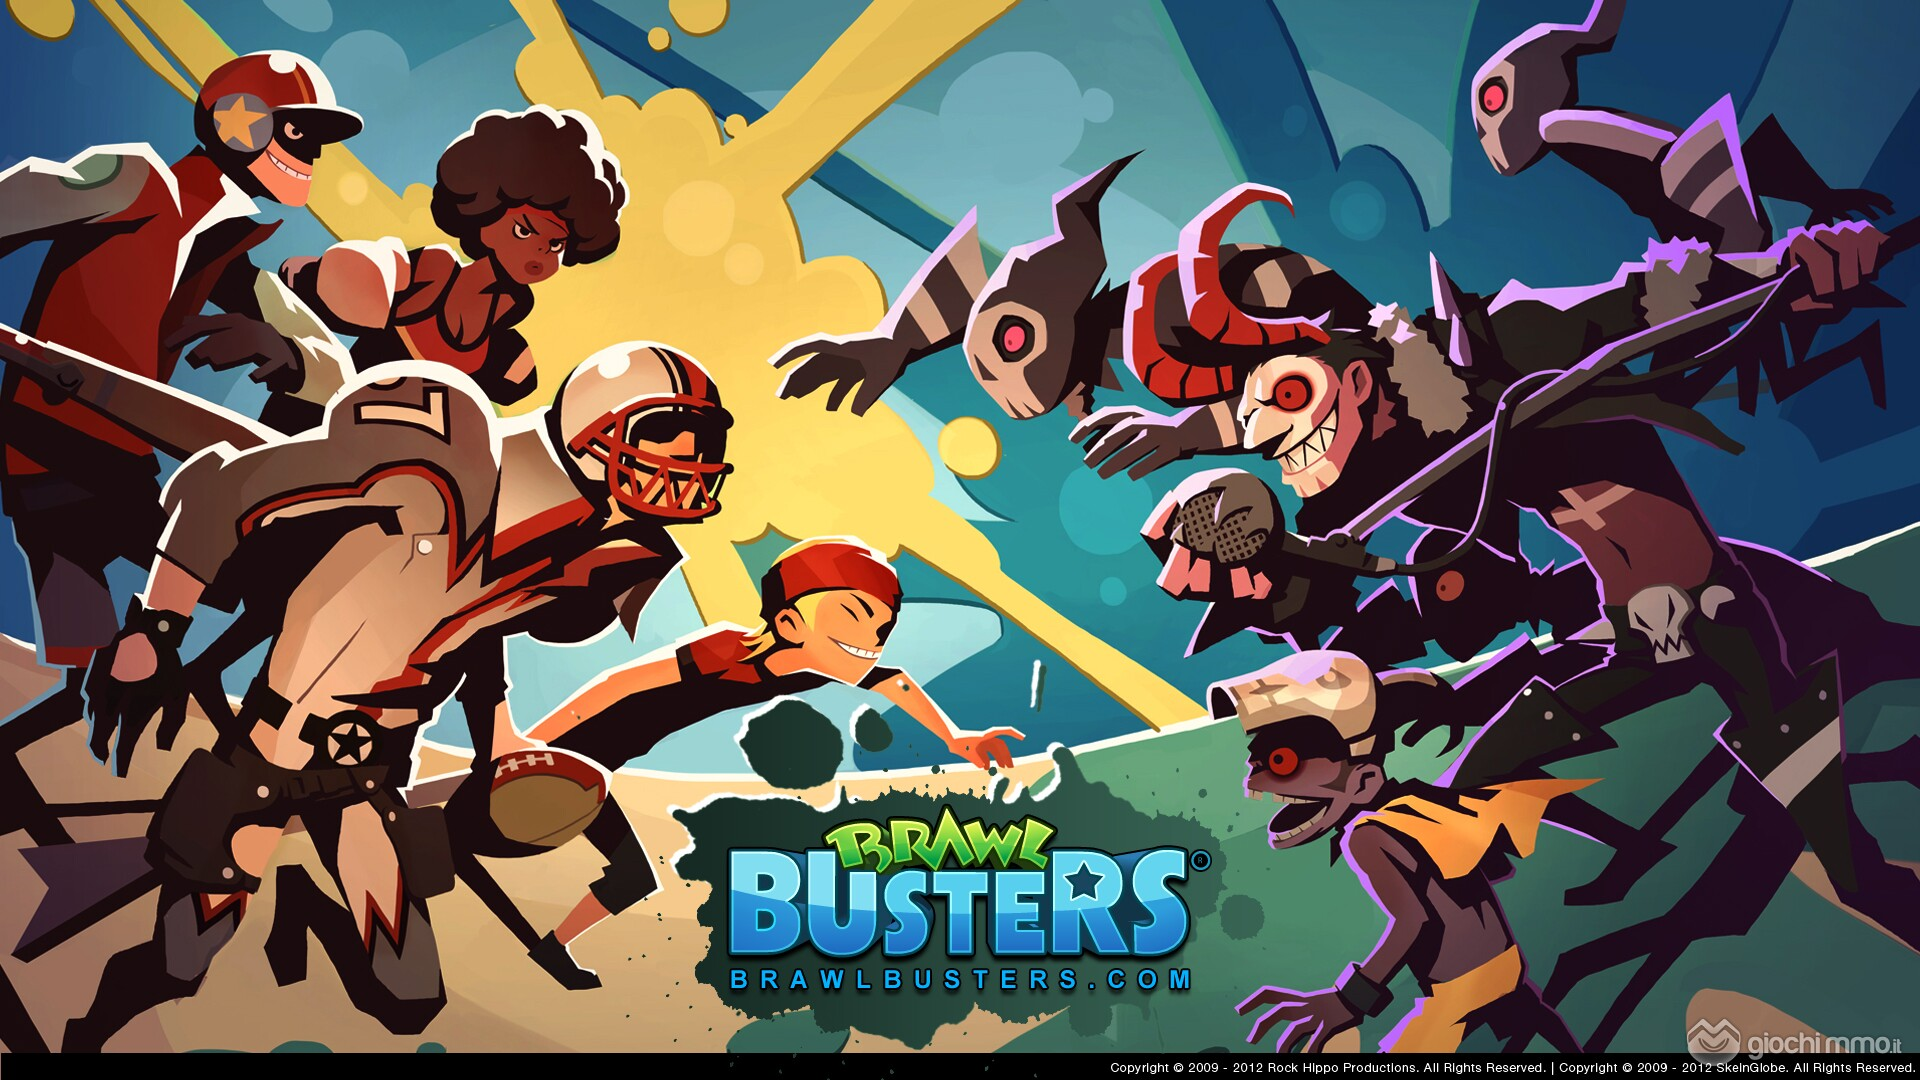 Clicca sull'immagine per ingrandirlaNome:   Brawl Busters Zombie Infection Wallpaper.jpgVisite: 22Dimensione:   433.0 KBID: 16462